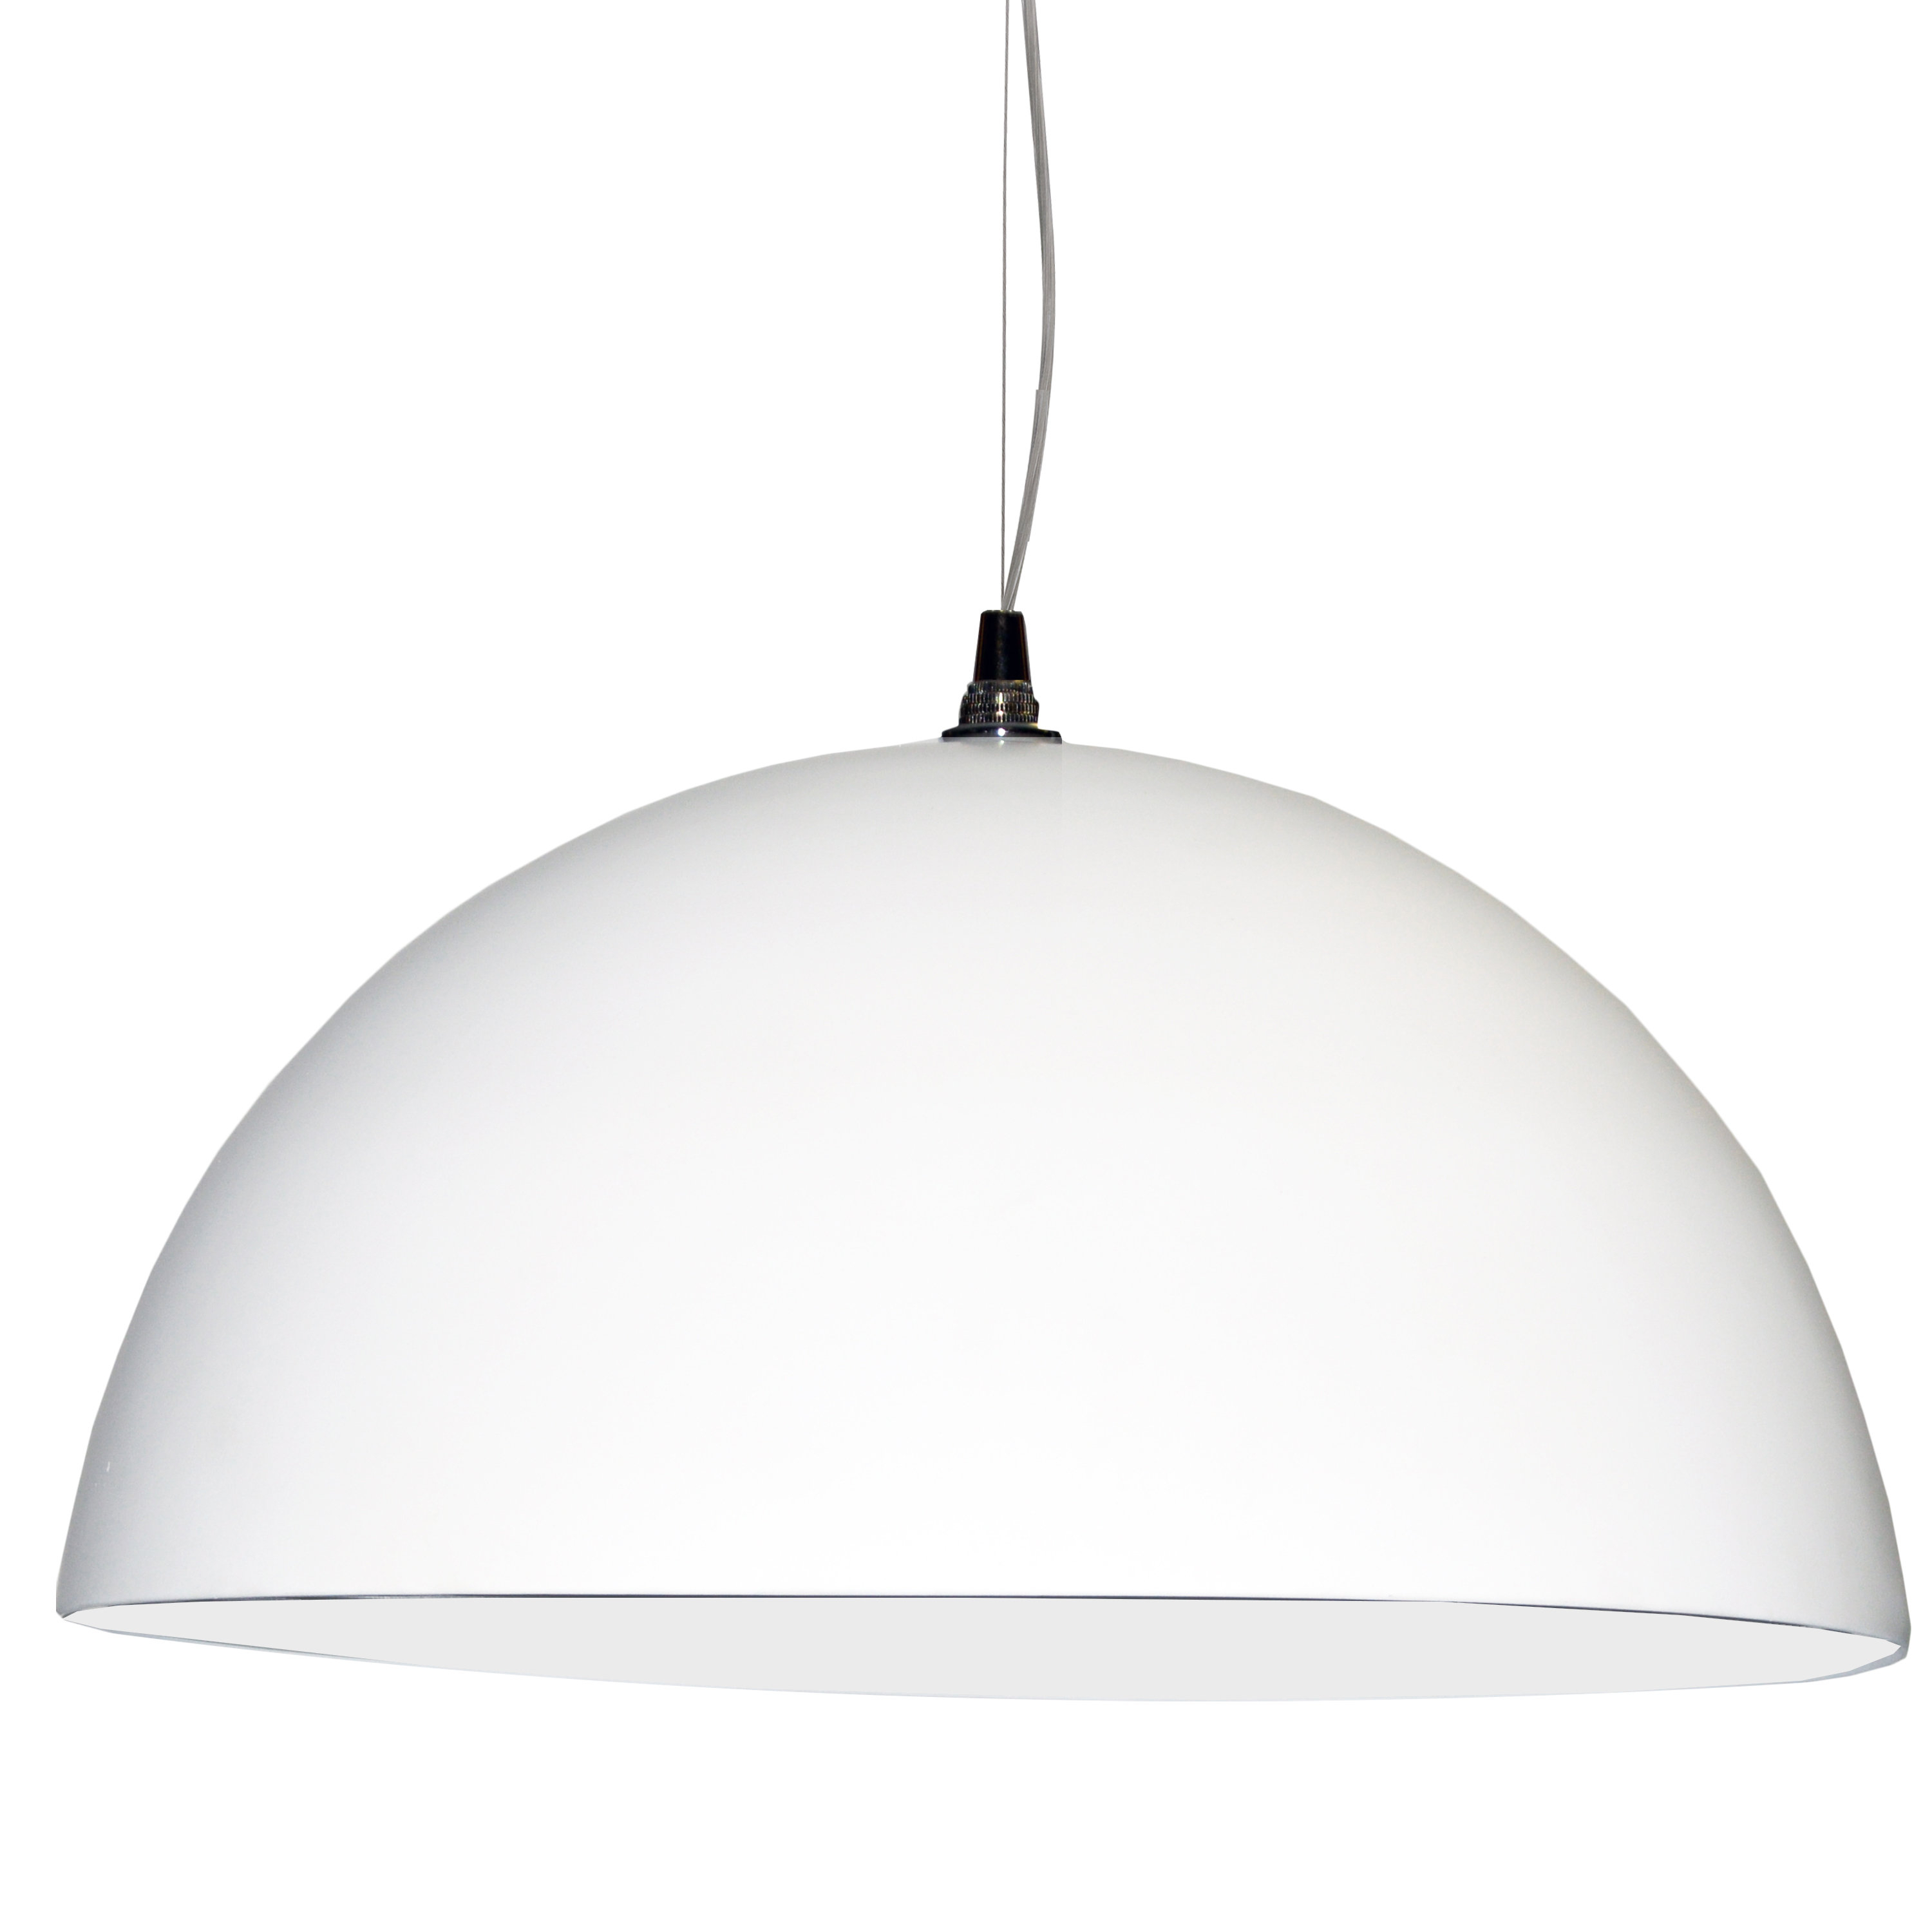 Ivy Bronx Oklee 3 Light Dome Pendant For Famous Ryker 1 Light Single Dome Pendants (View 7 of 25)